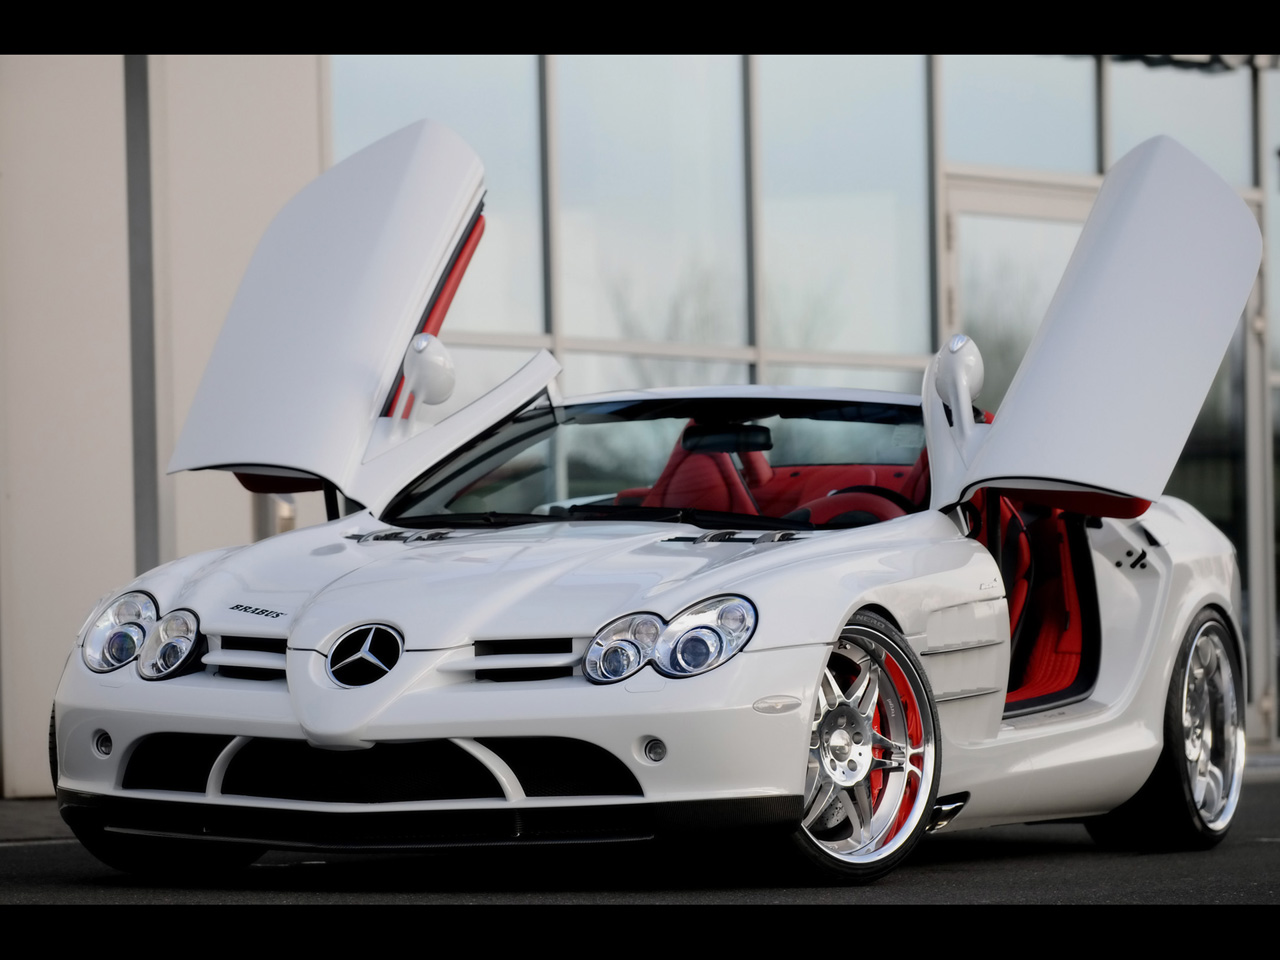 Mercedes-benz amg photo - 4